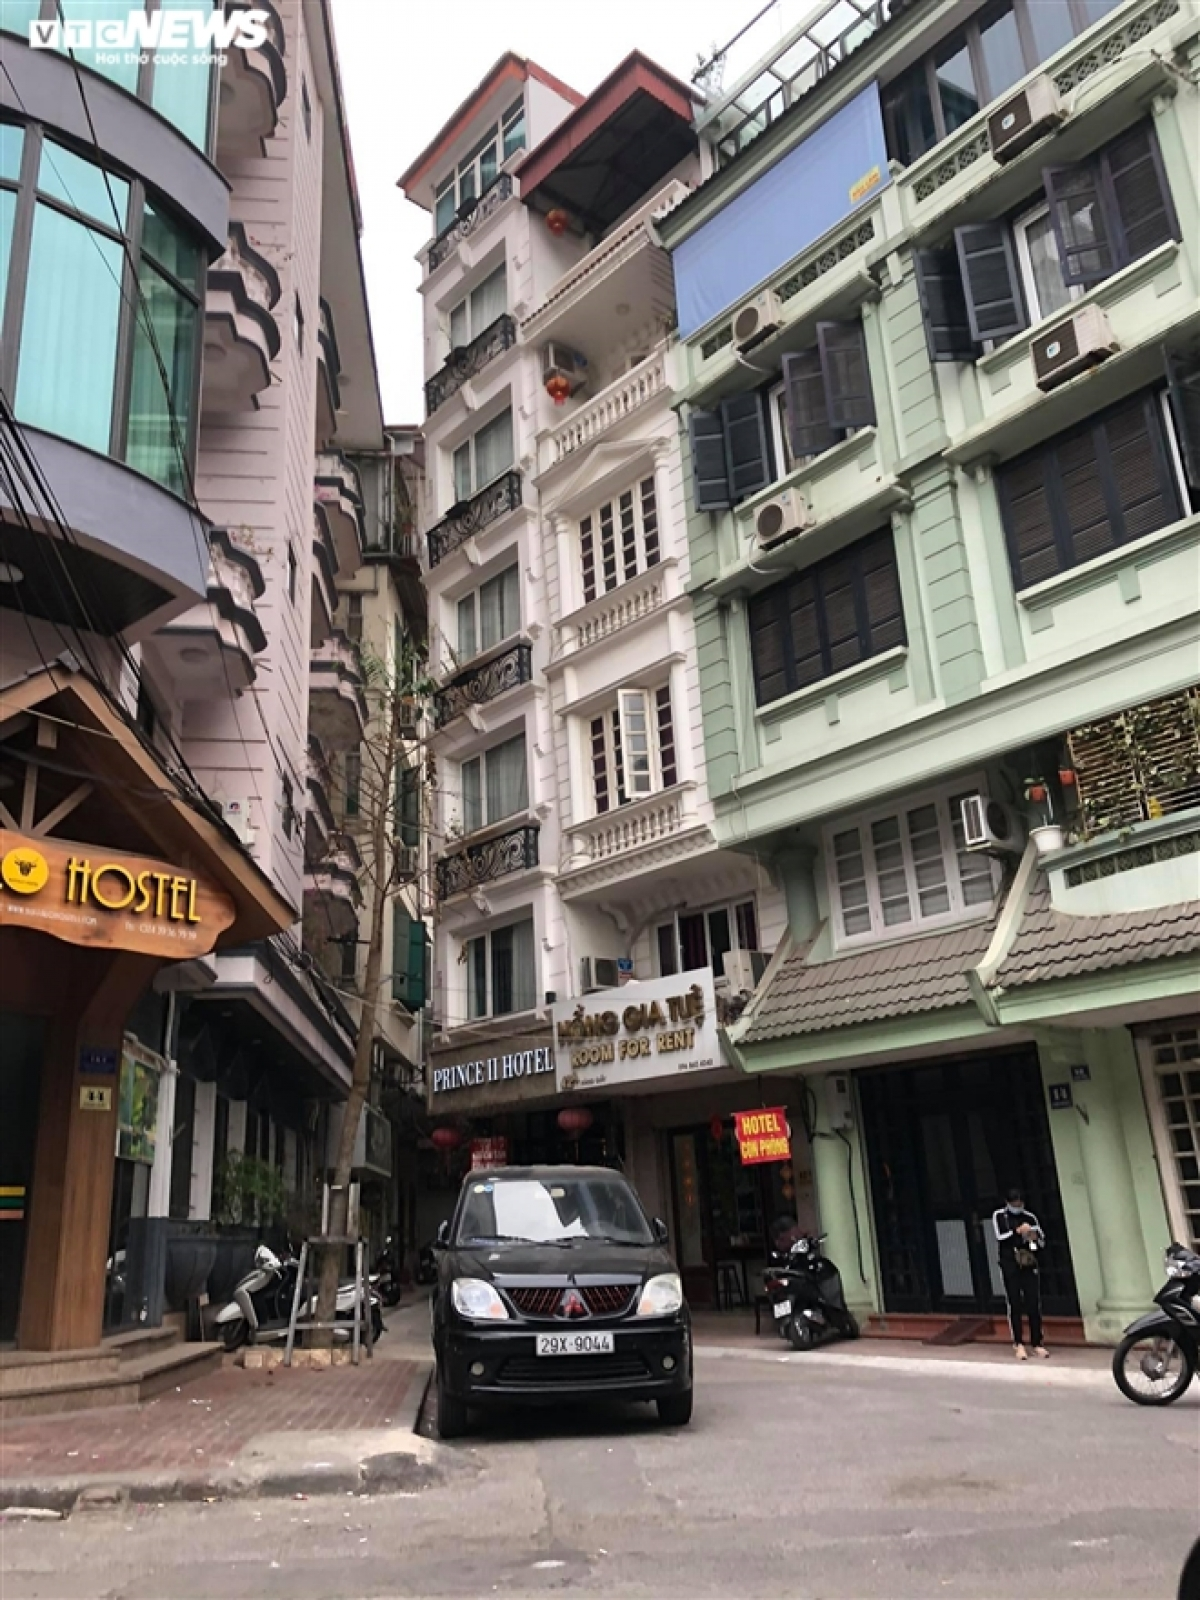 Hotels located Hang Giay street are left deserted. A hotel owner says that the majority of his customers are foreign visitors, with the sharp decrease of visitors coming from abroad resulting in heavy losses, meaning he now intends to close his hotel.